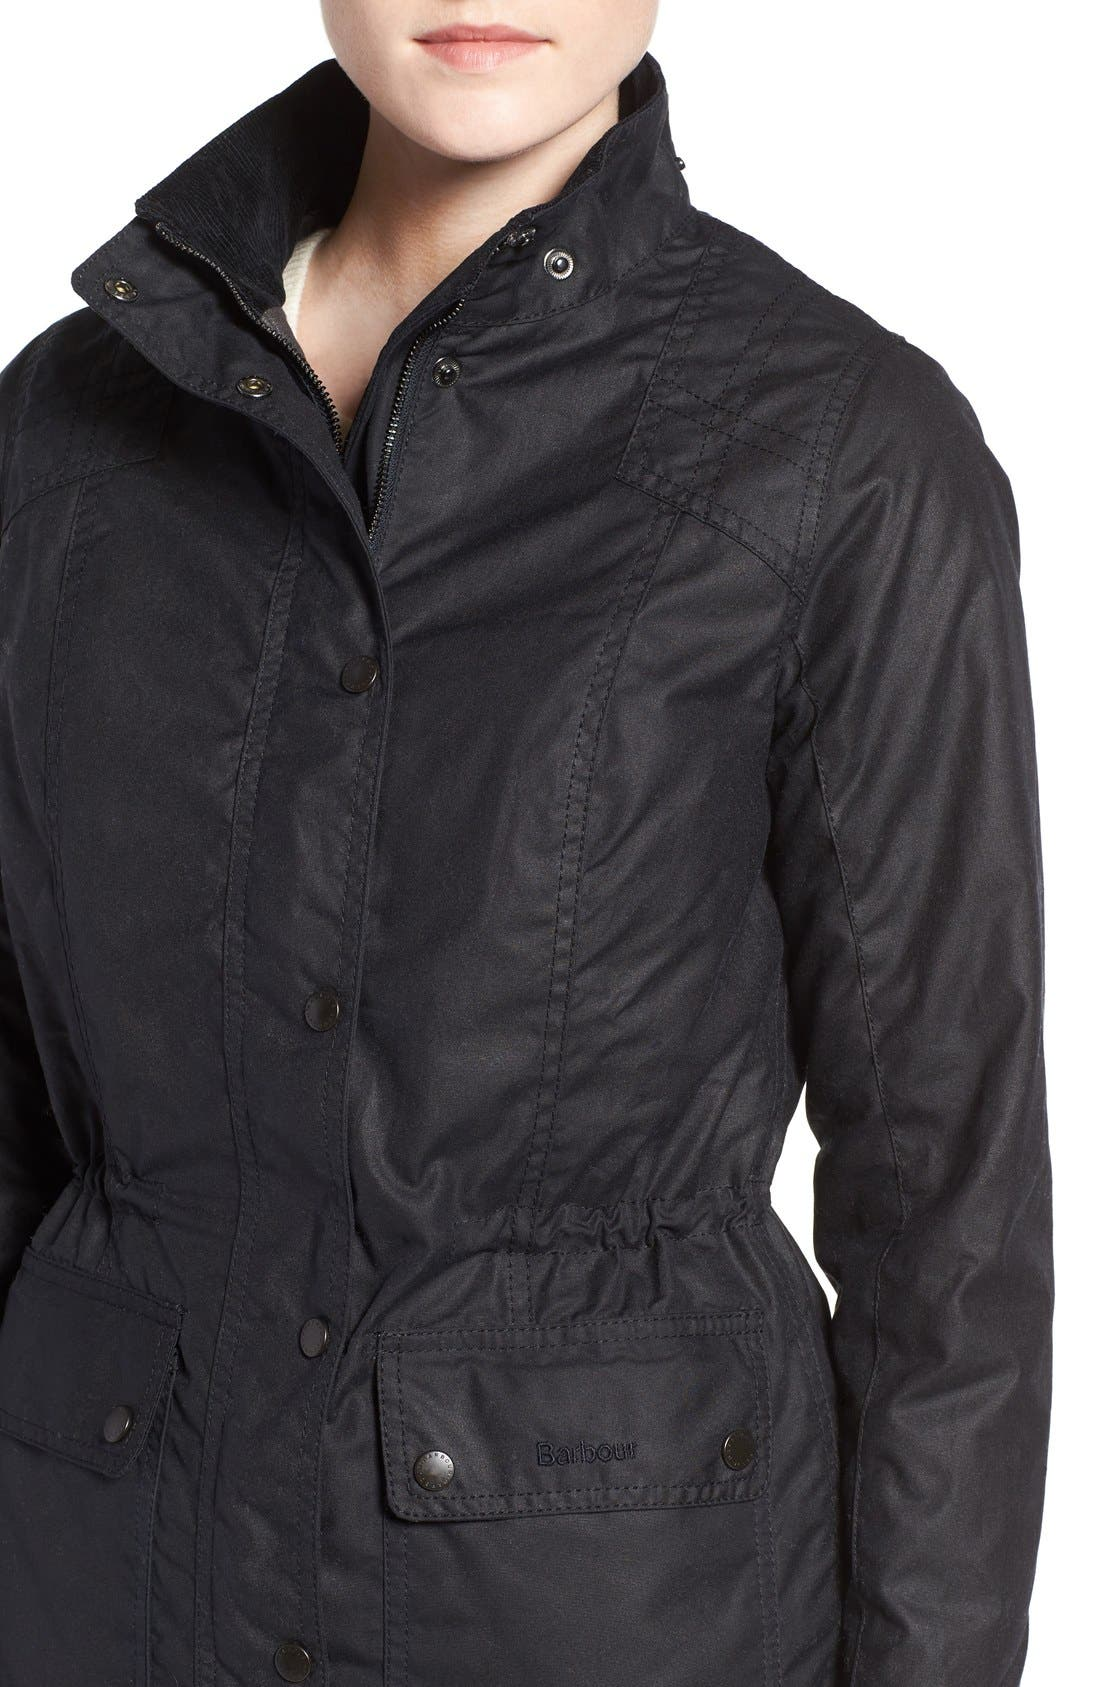 'Orkney' Waxed Cotton Anorak with Removable Hood,                             Alternate thumbnail 2, color,                             410